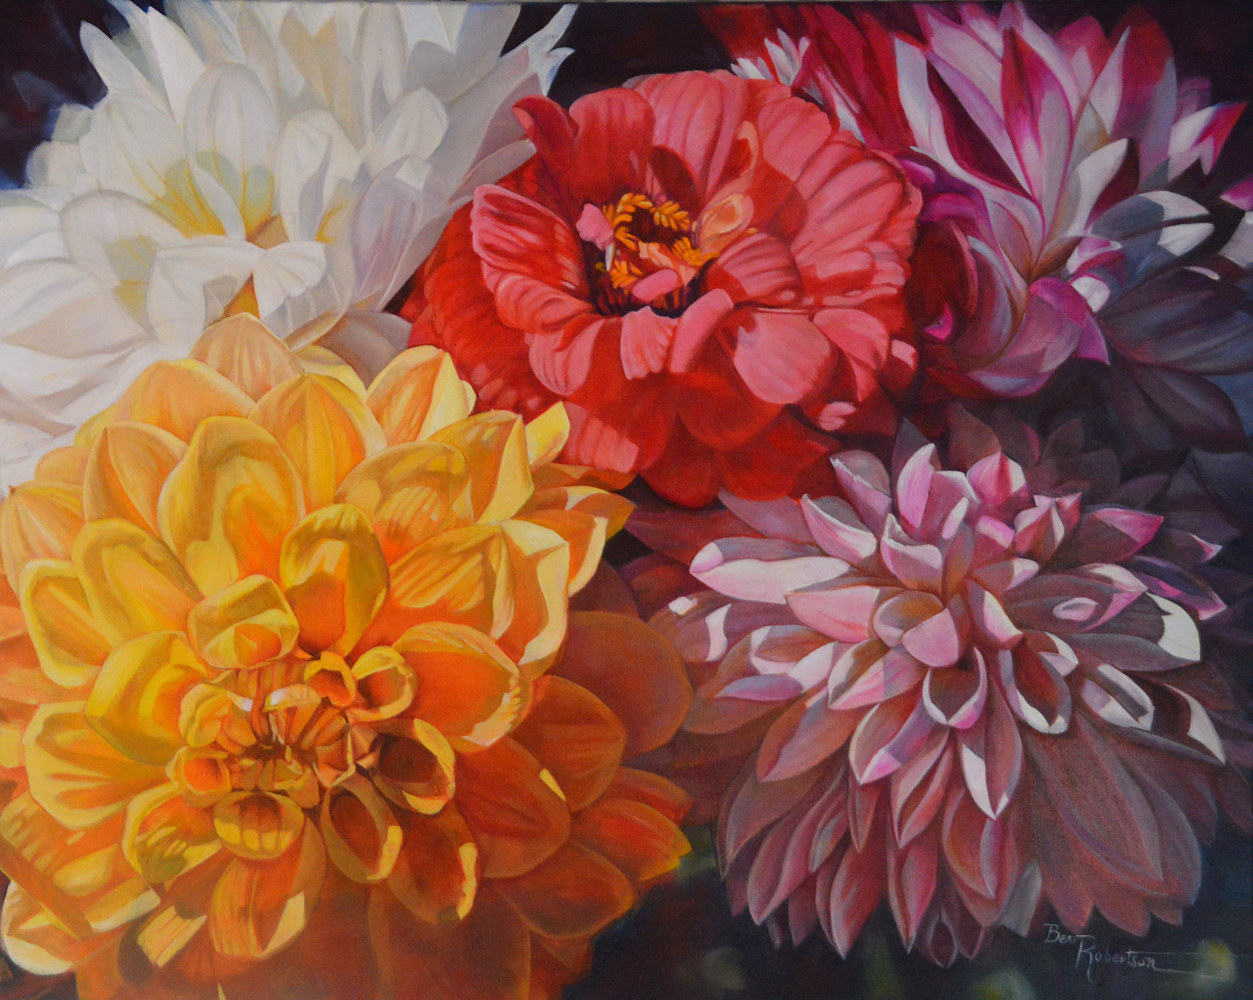 Oil painting The Zinnia Amongst Us BevRobertson BR201804 by Bev Robertson